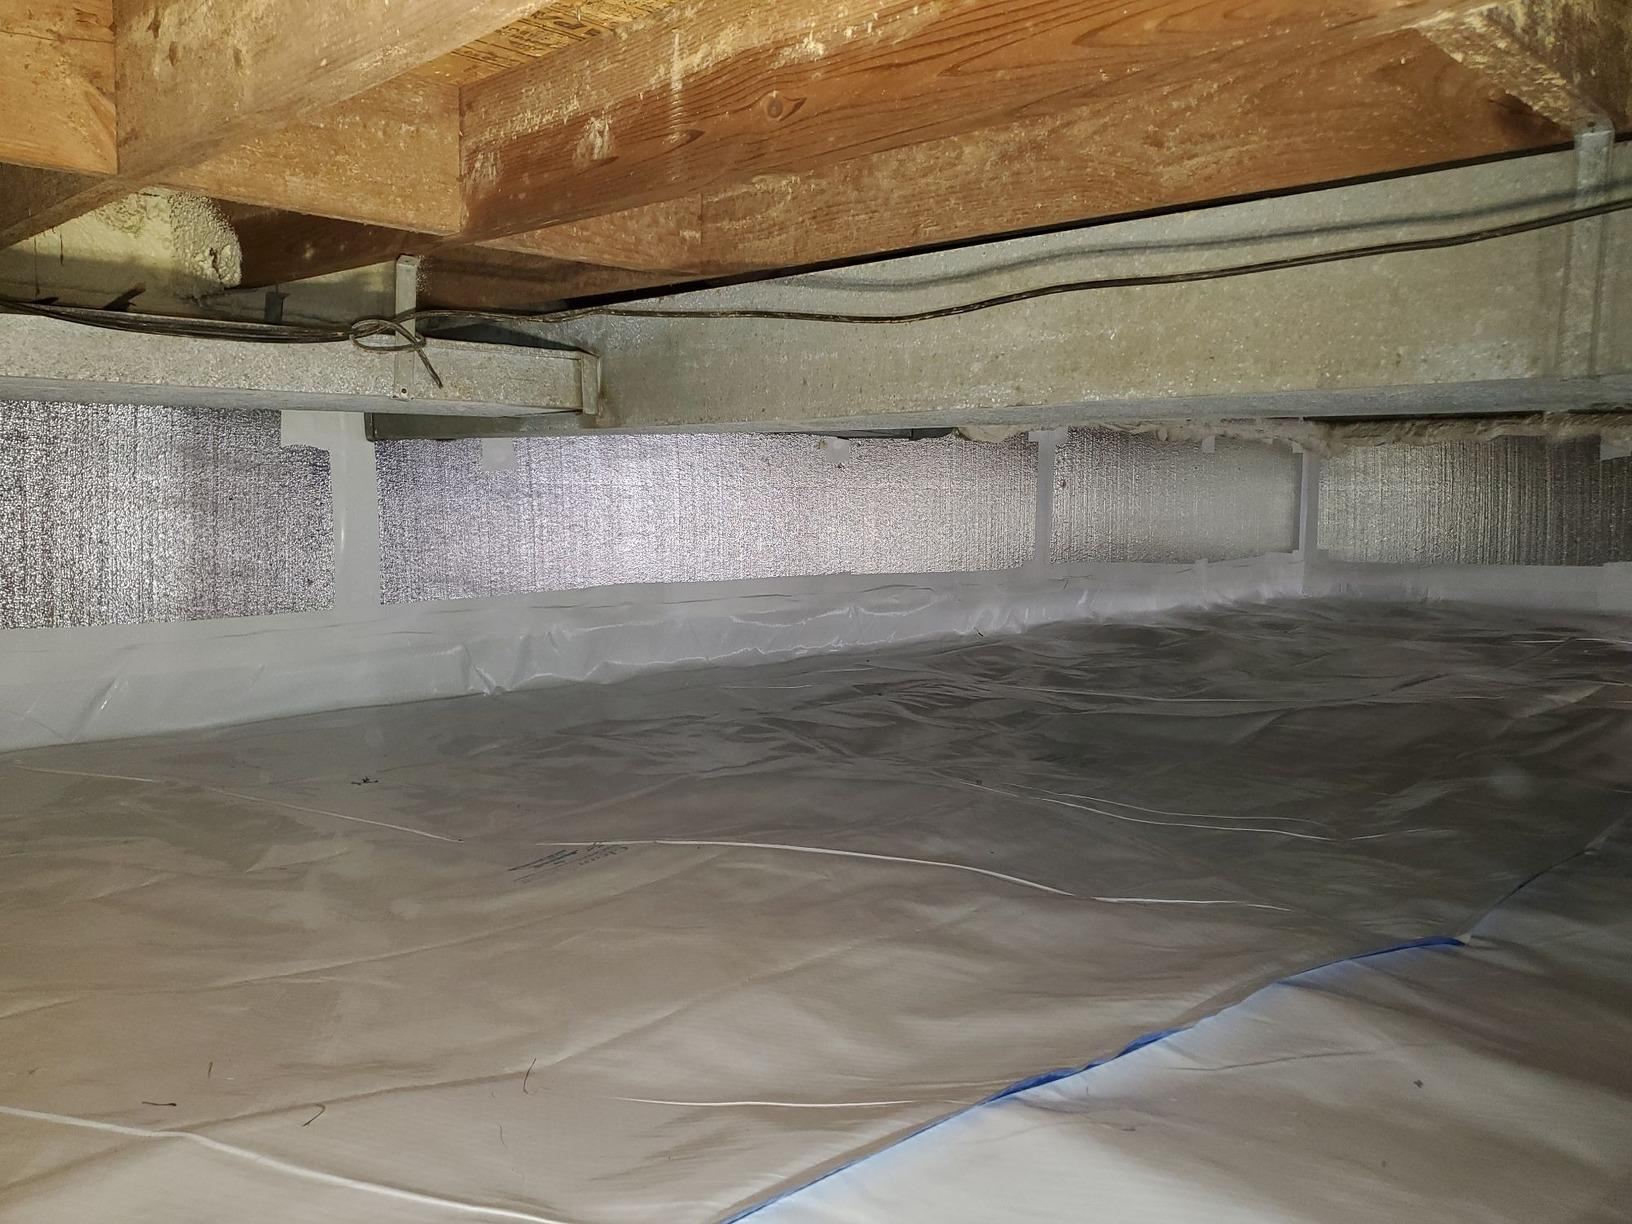 Rockville, MD Crawl Space & Sagging Floors - After Photo